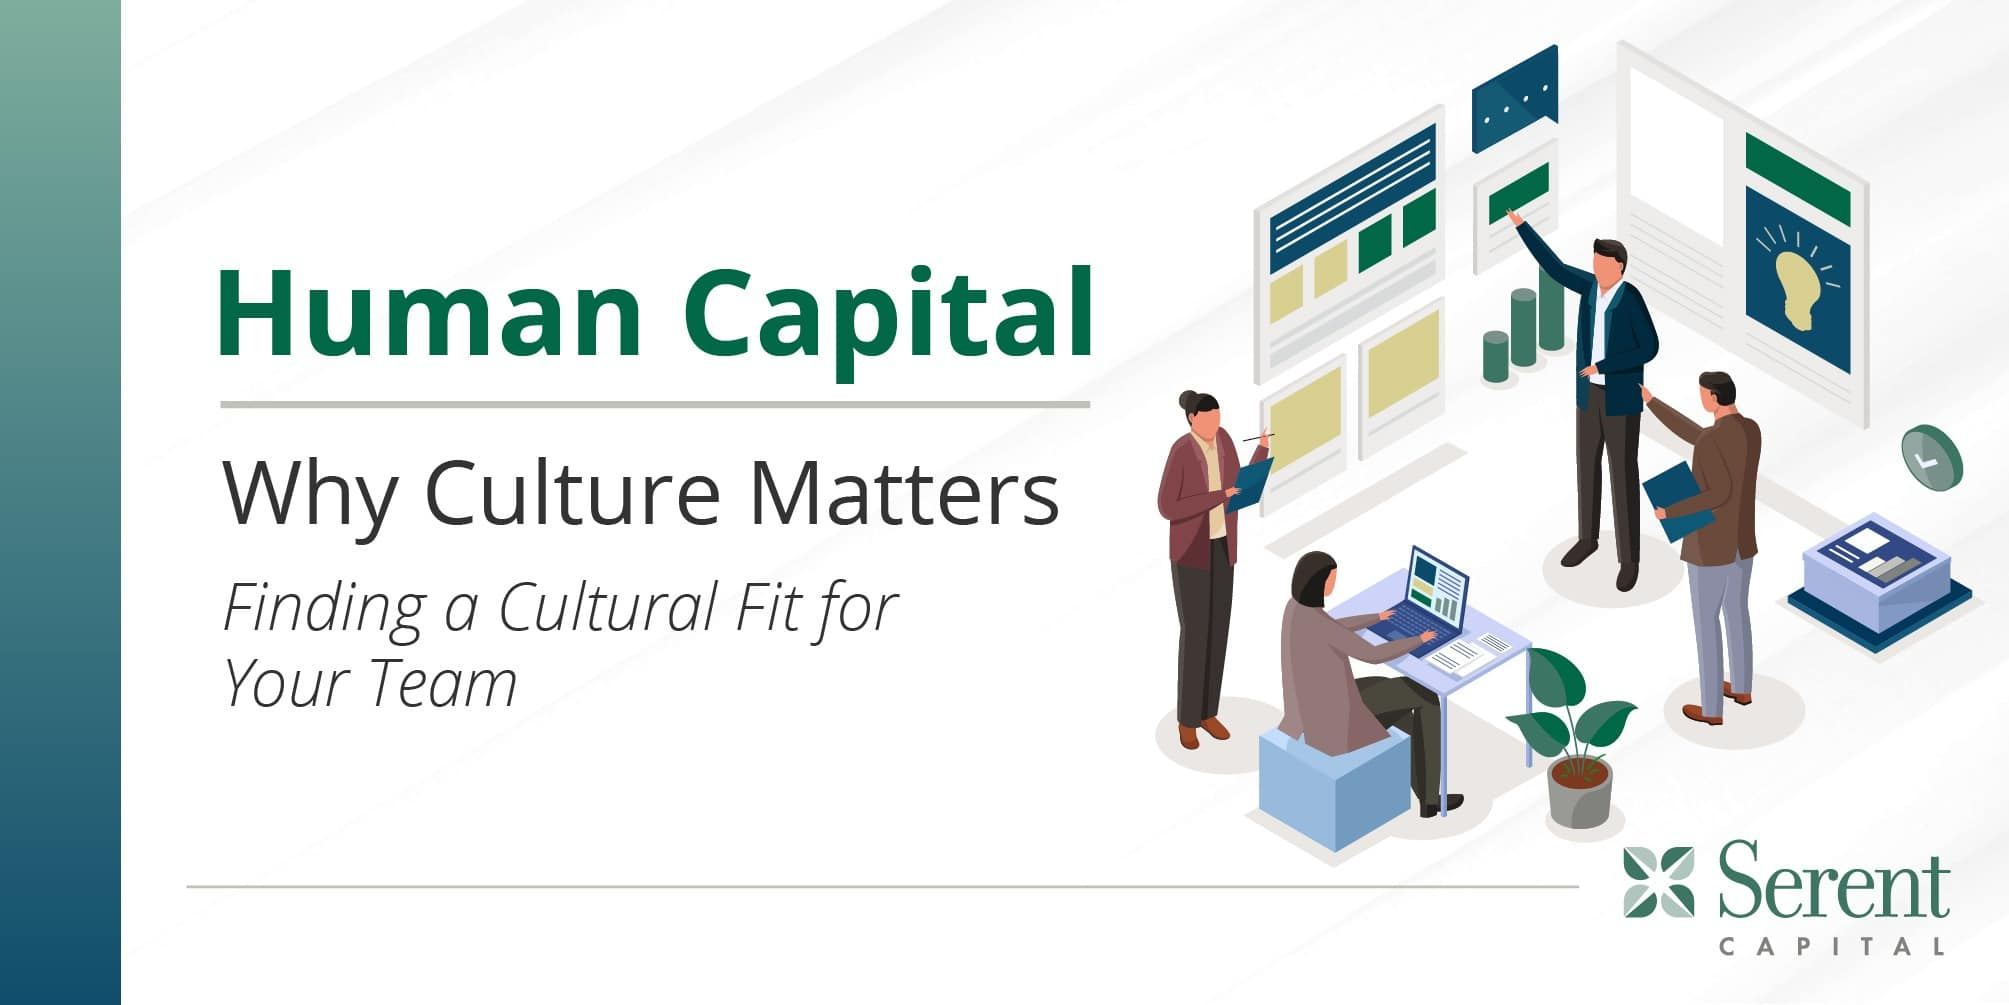 Why Culture Matters: Finding a Cultural Fit for Your Team